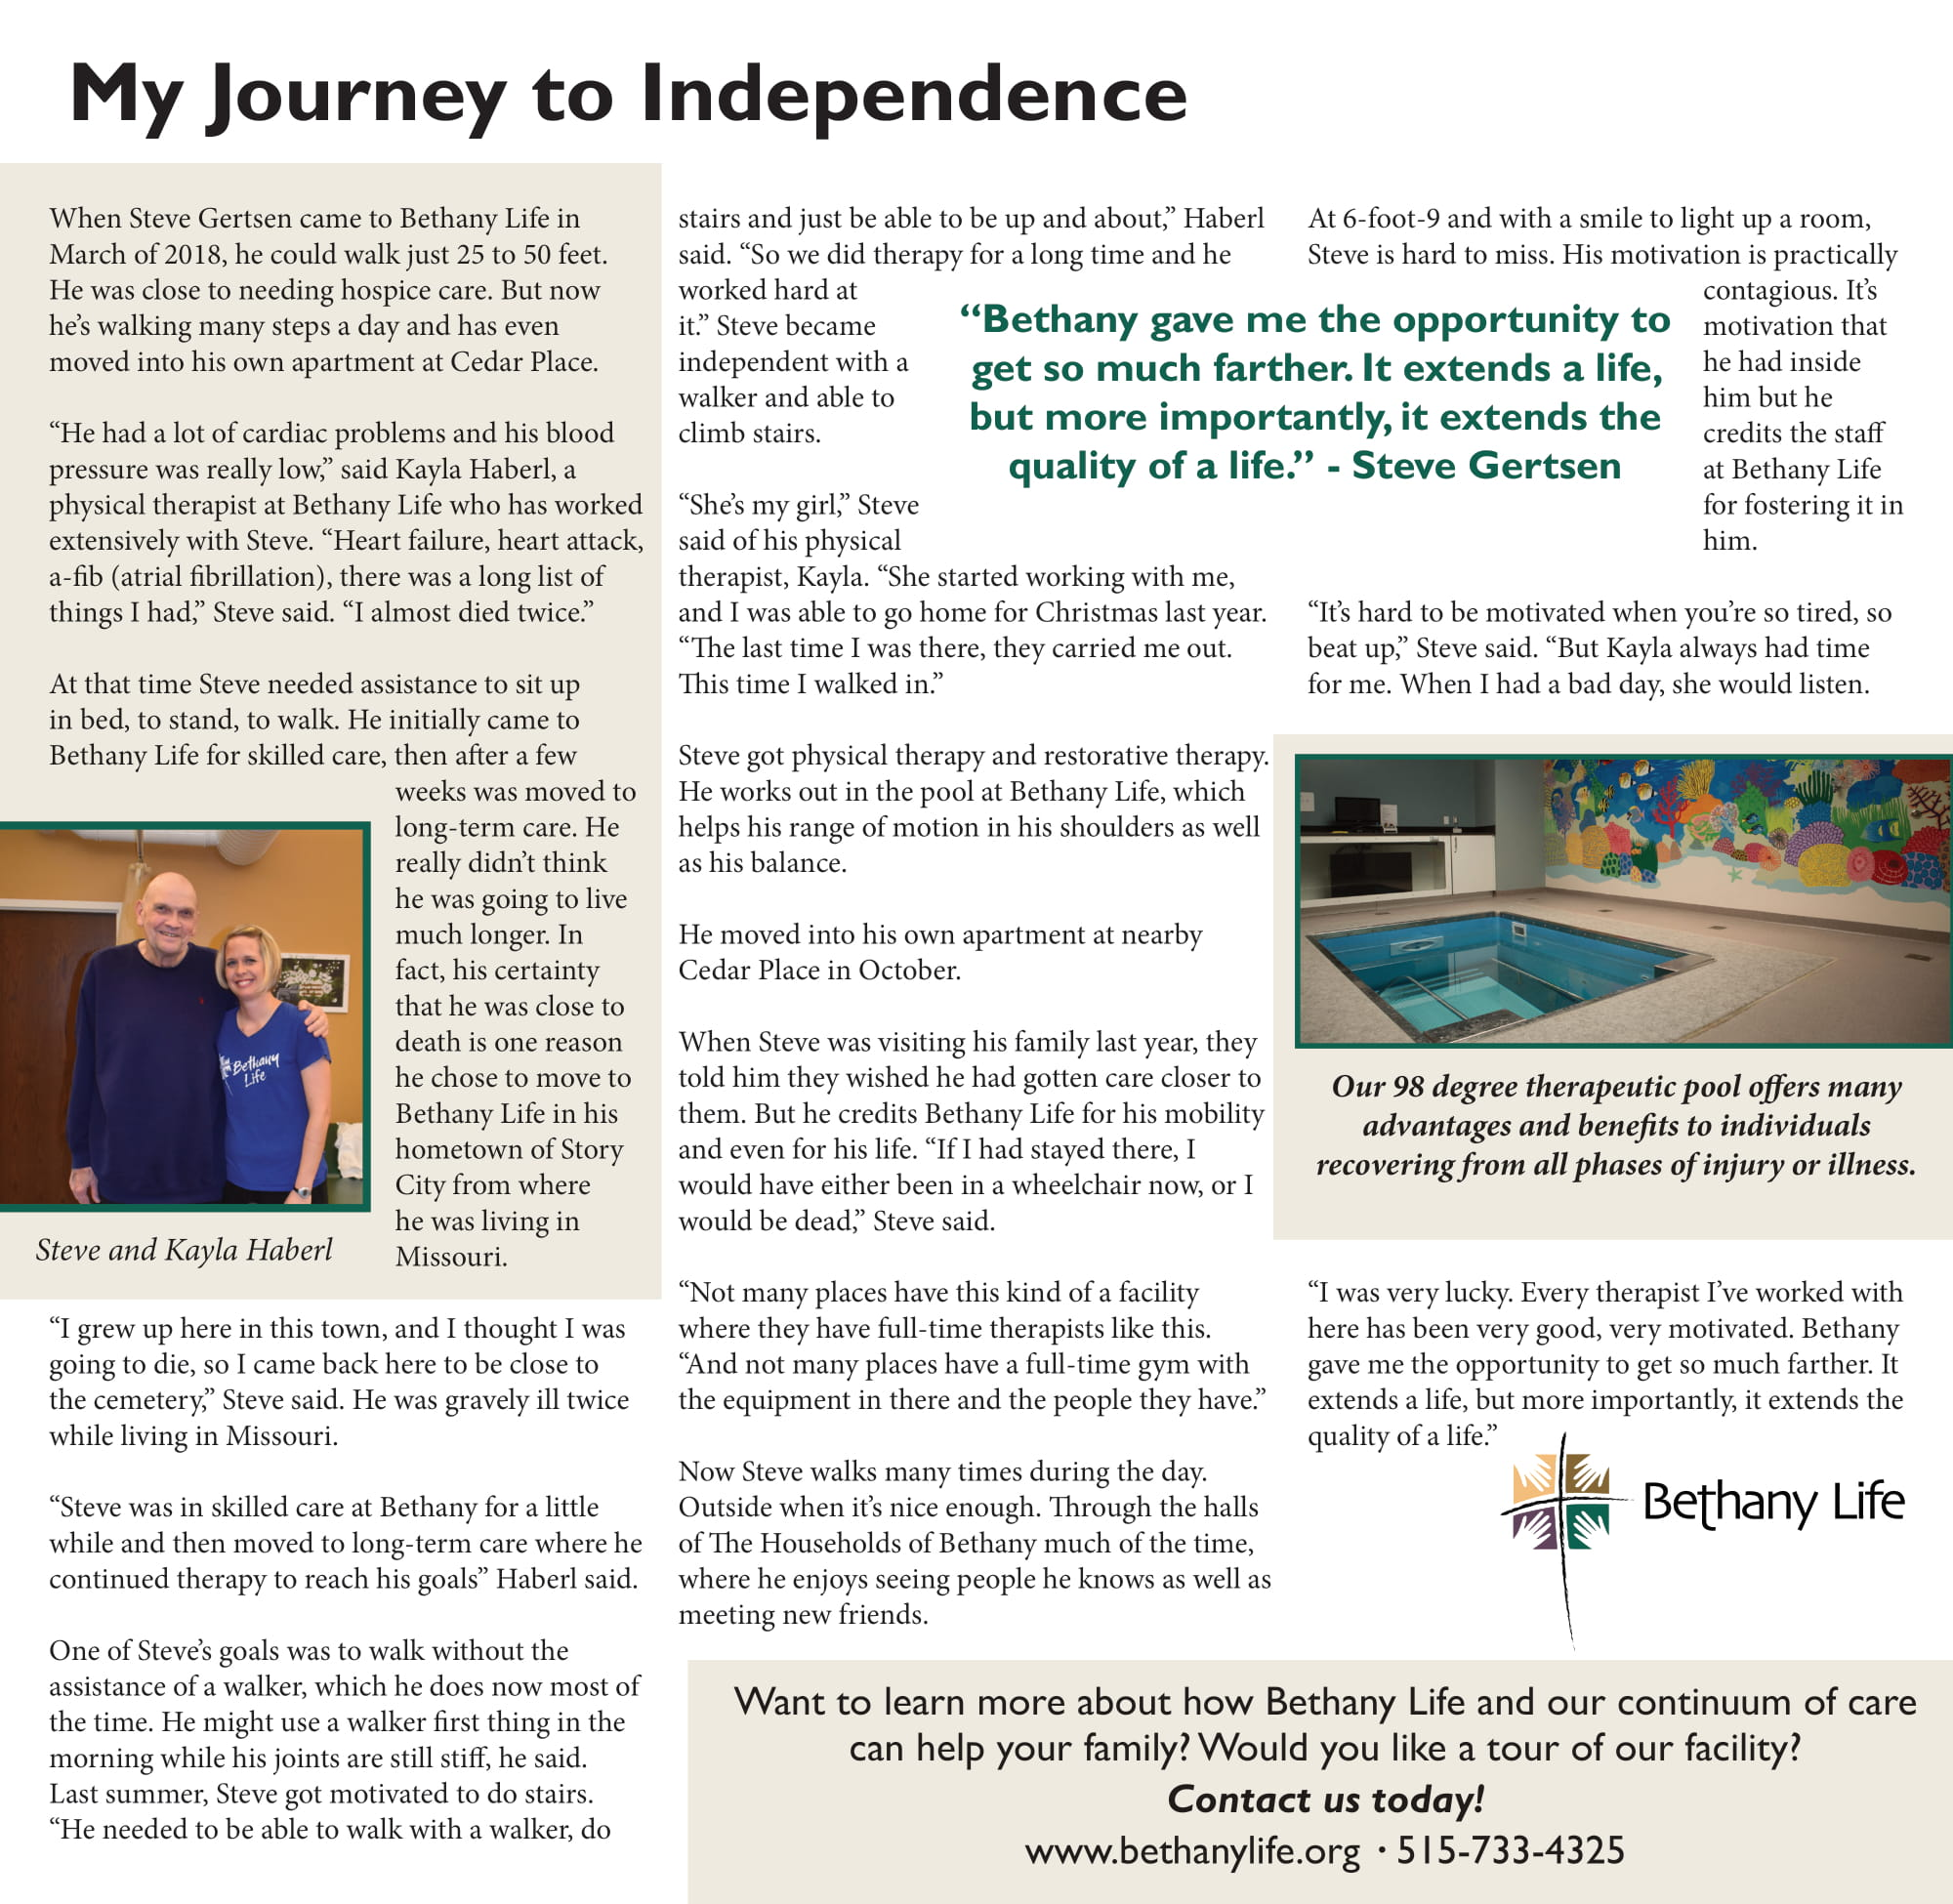 My Journey to Independence - Steve Gertsen Story about Bethany Life